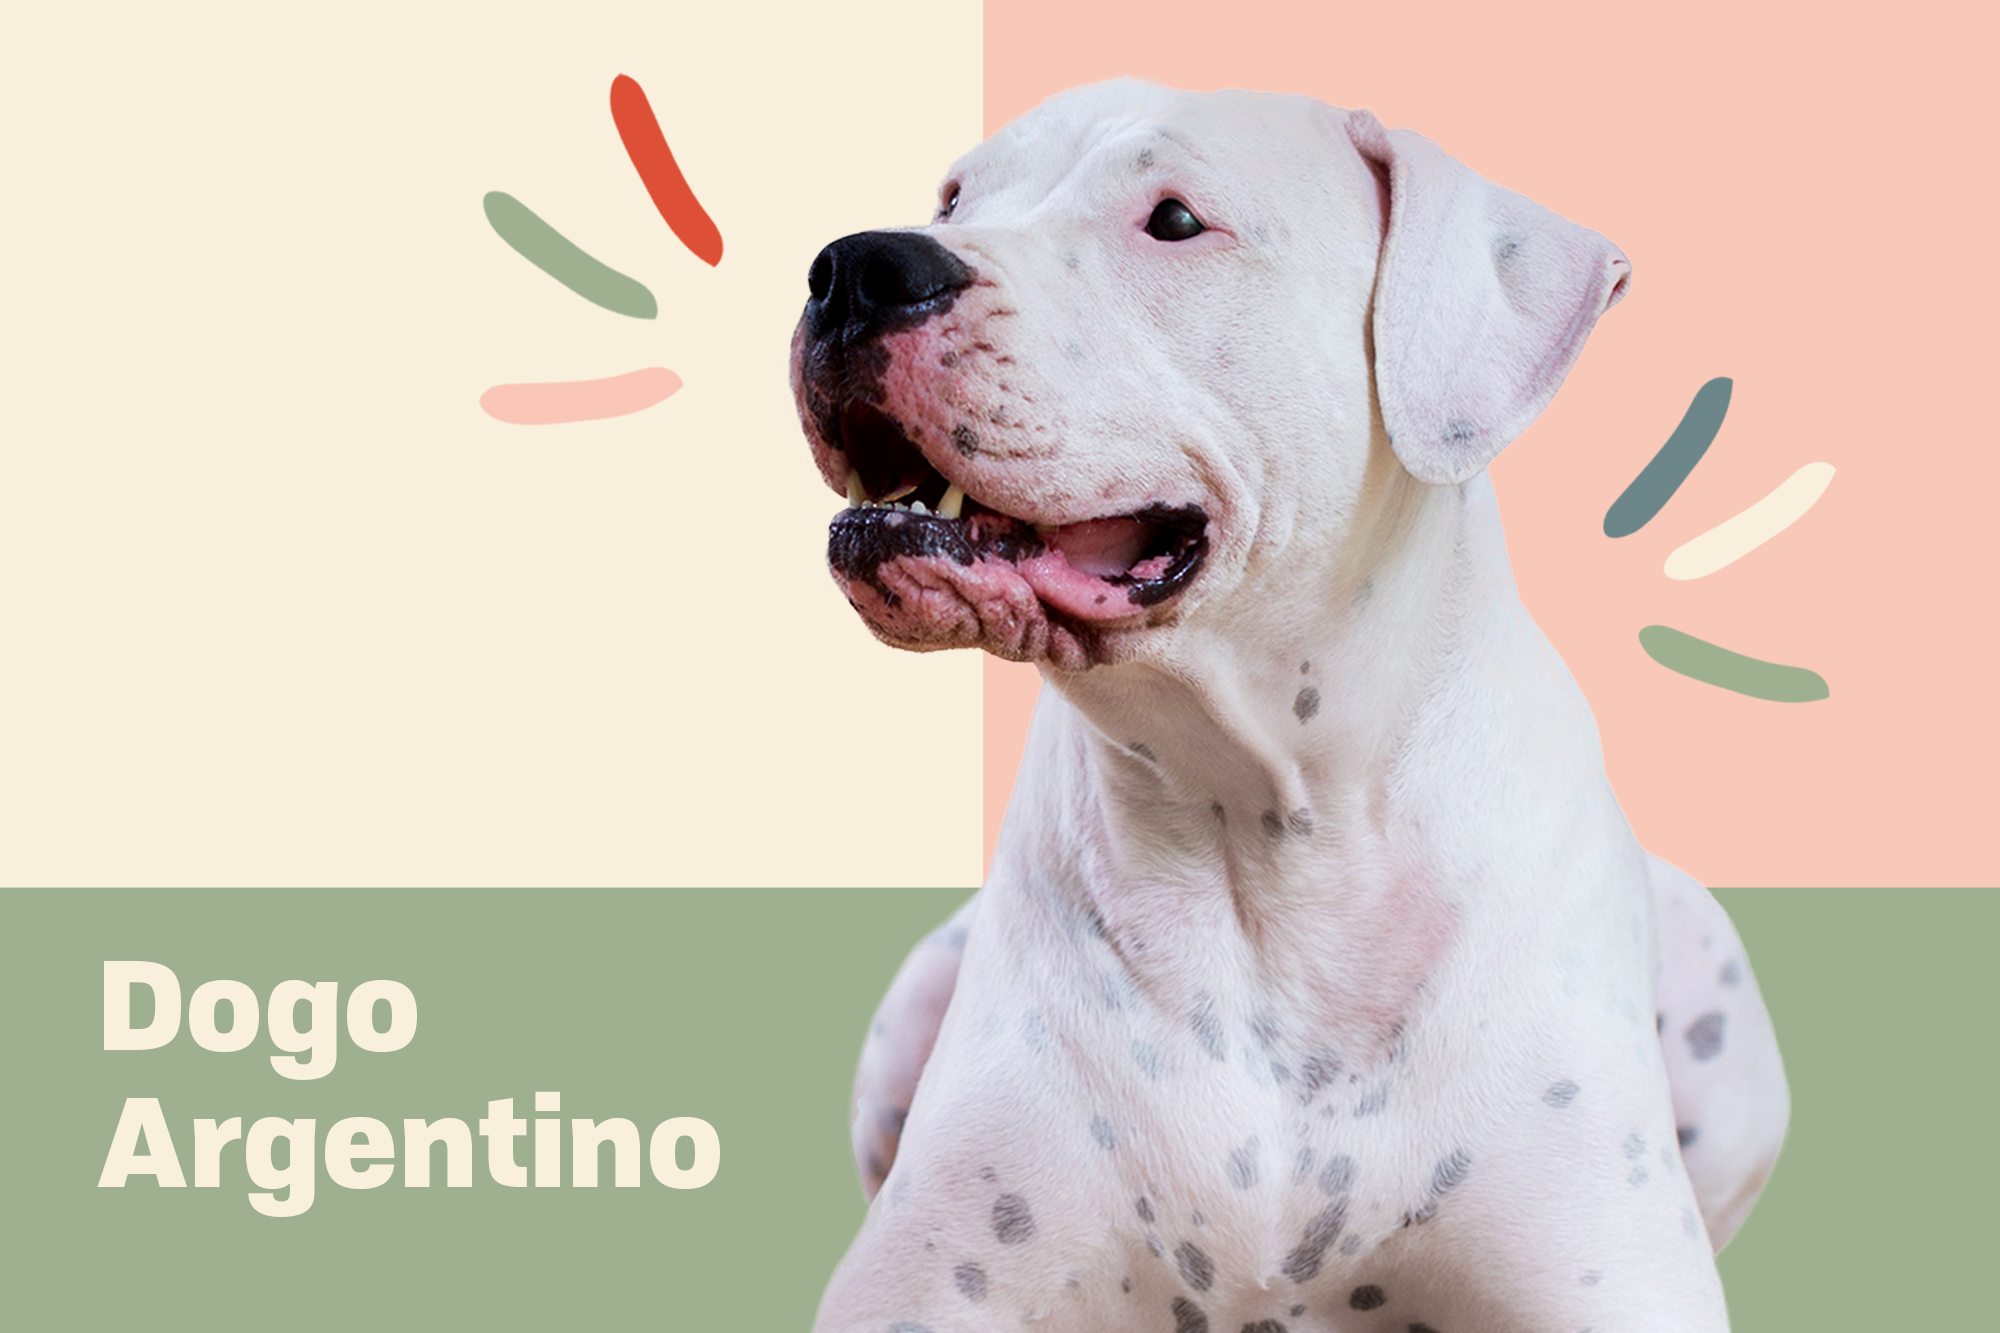 Dogo Argentino Breed Photo